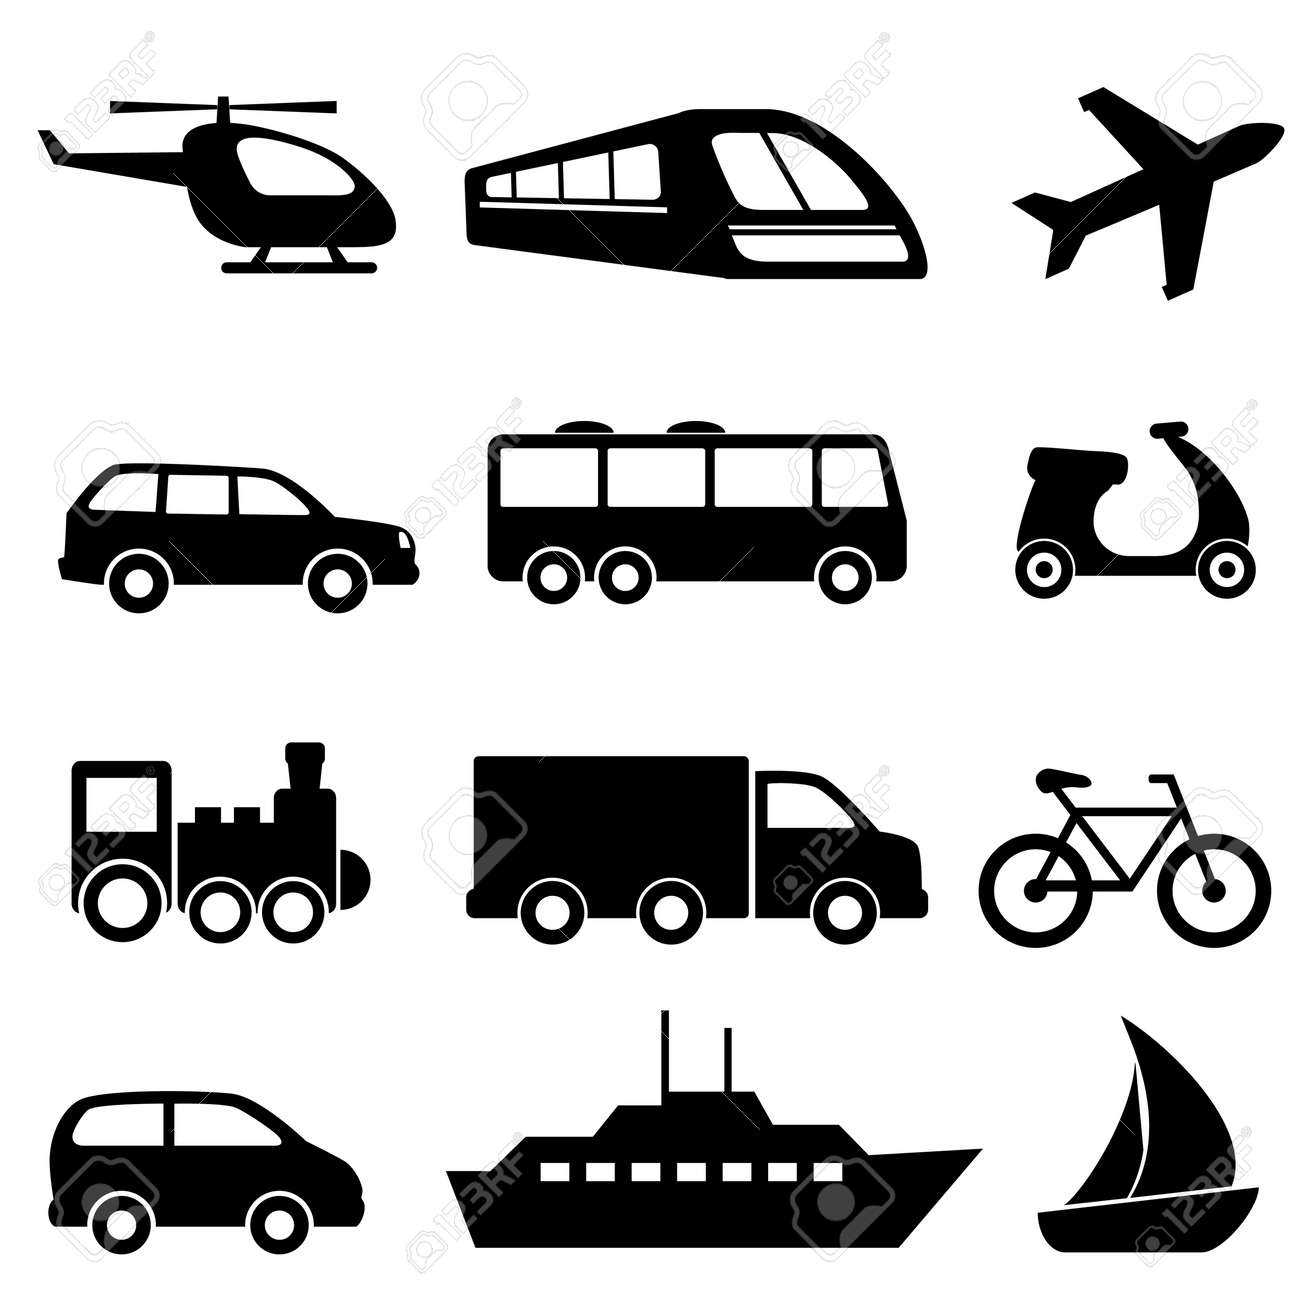 Icons for various means of transportation - 13984807